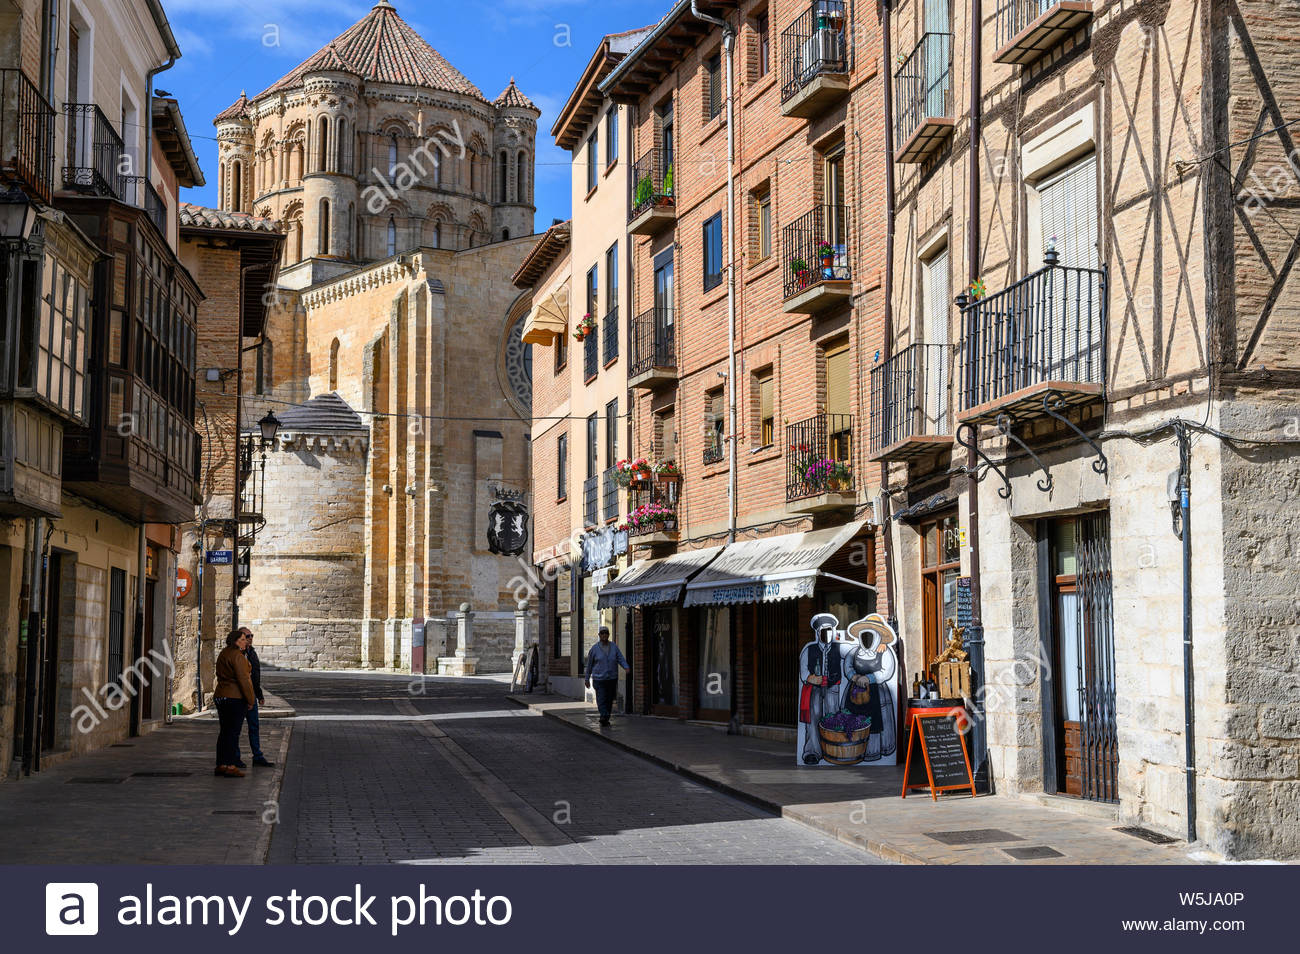 The Calle Mayor in Toro with the 13th century Collegiate church 1300x954